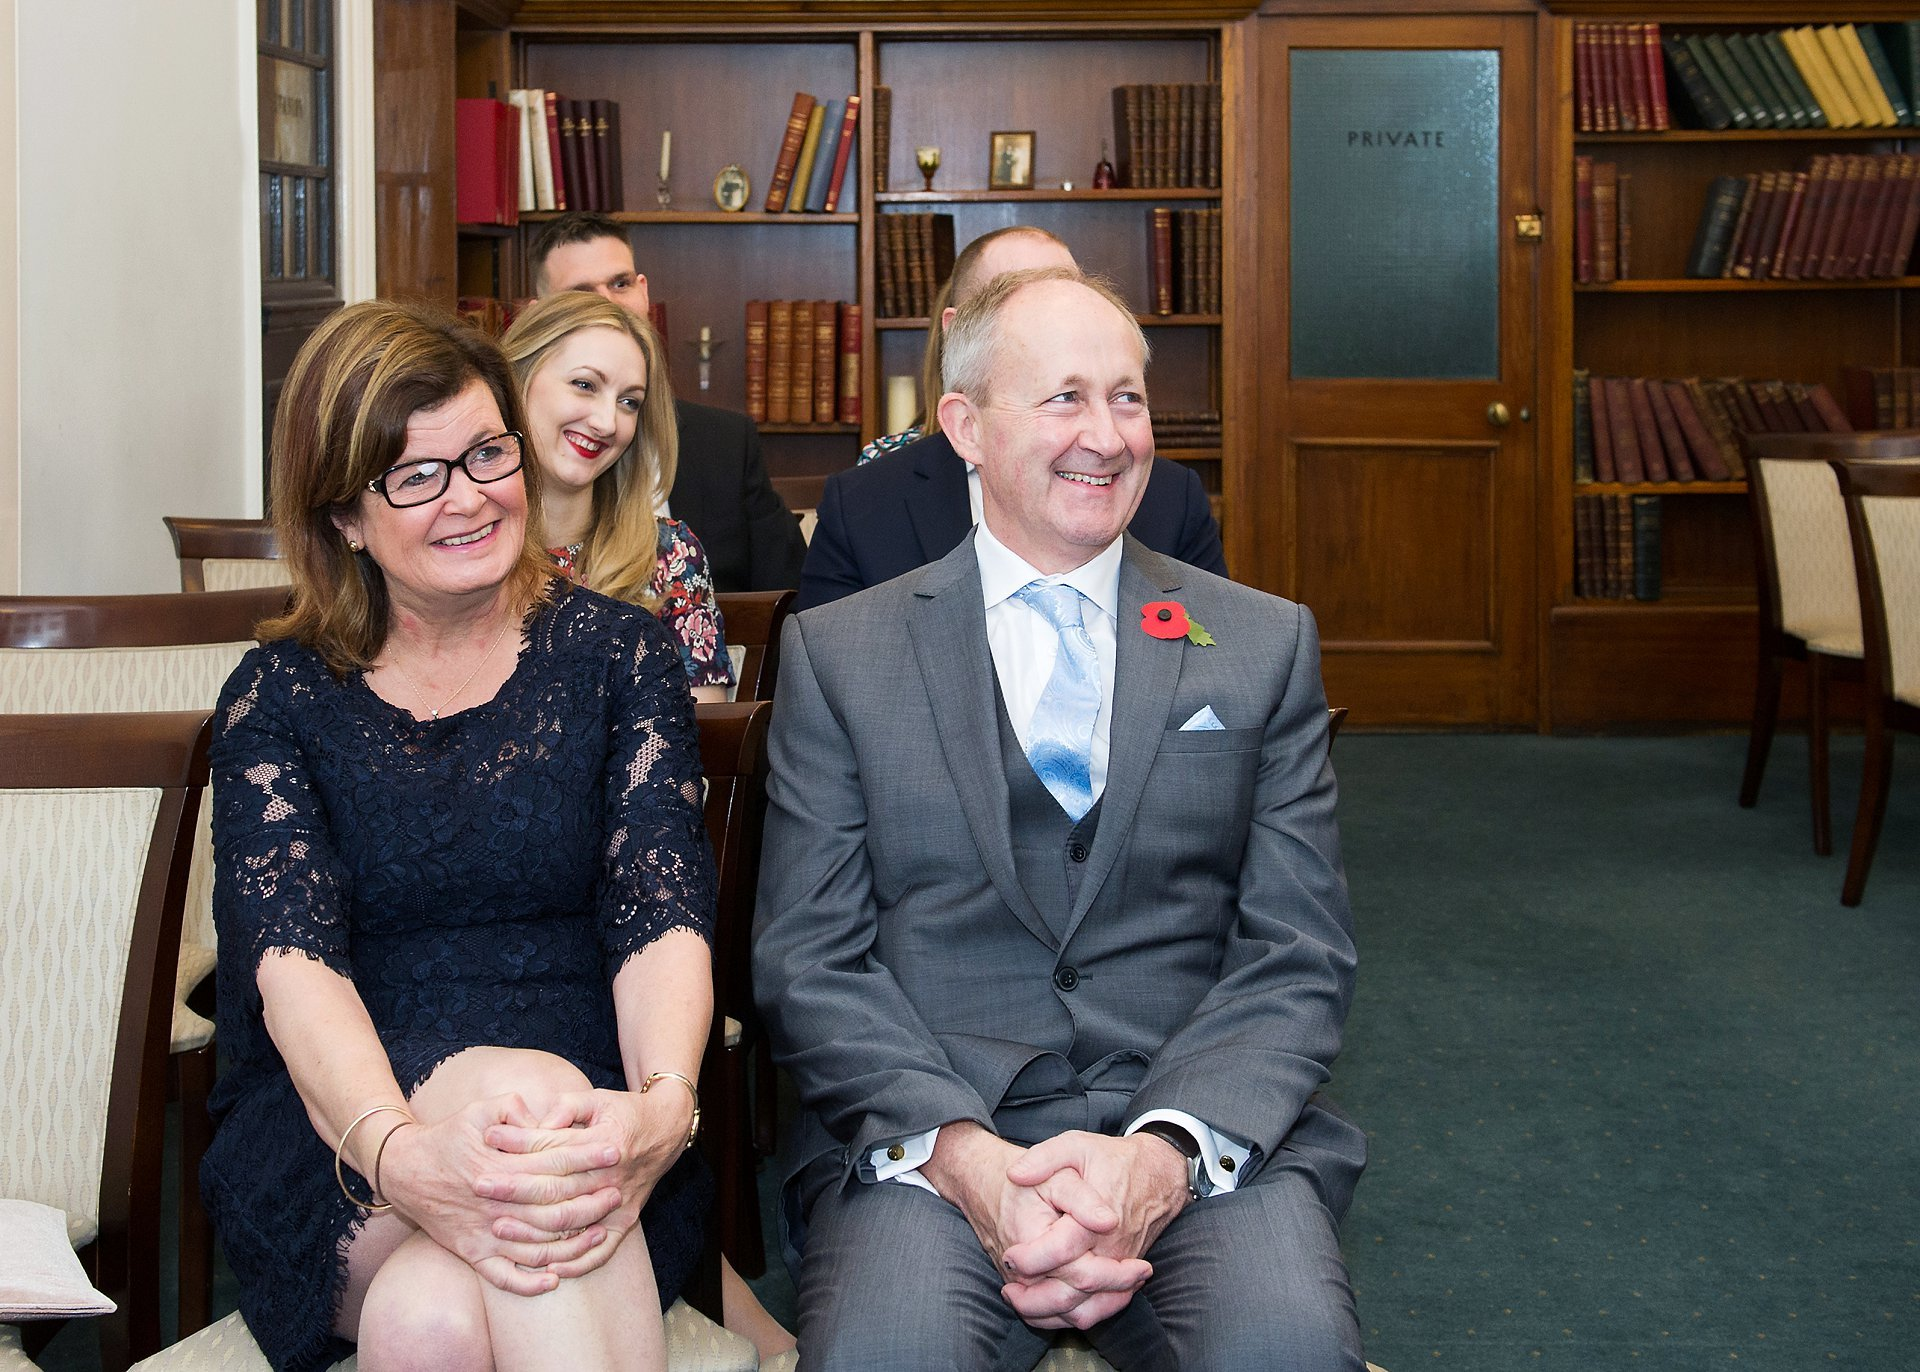 the groom's parents and family look on smiling during this mayfair library wedding